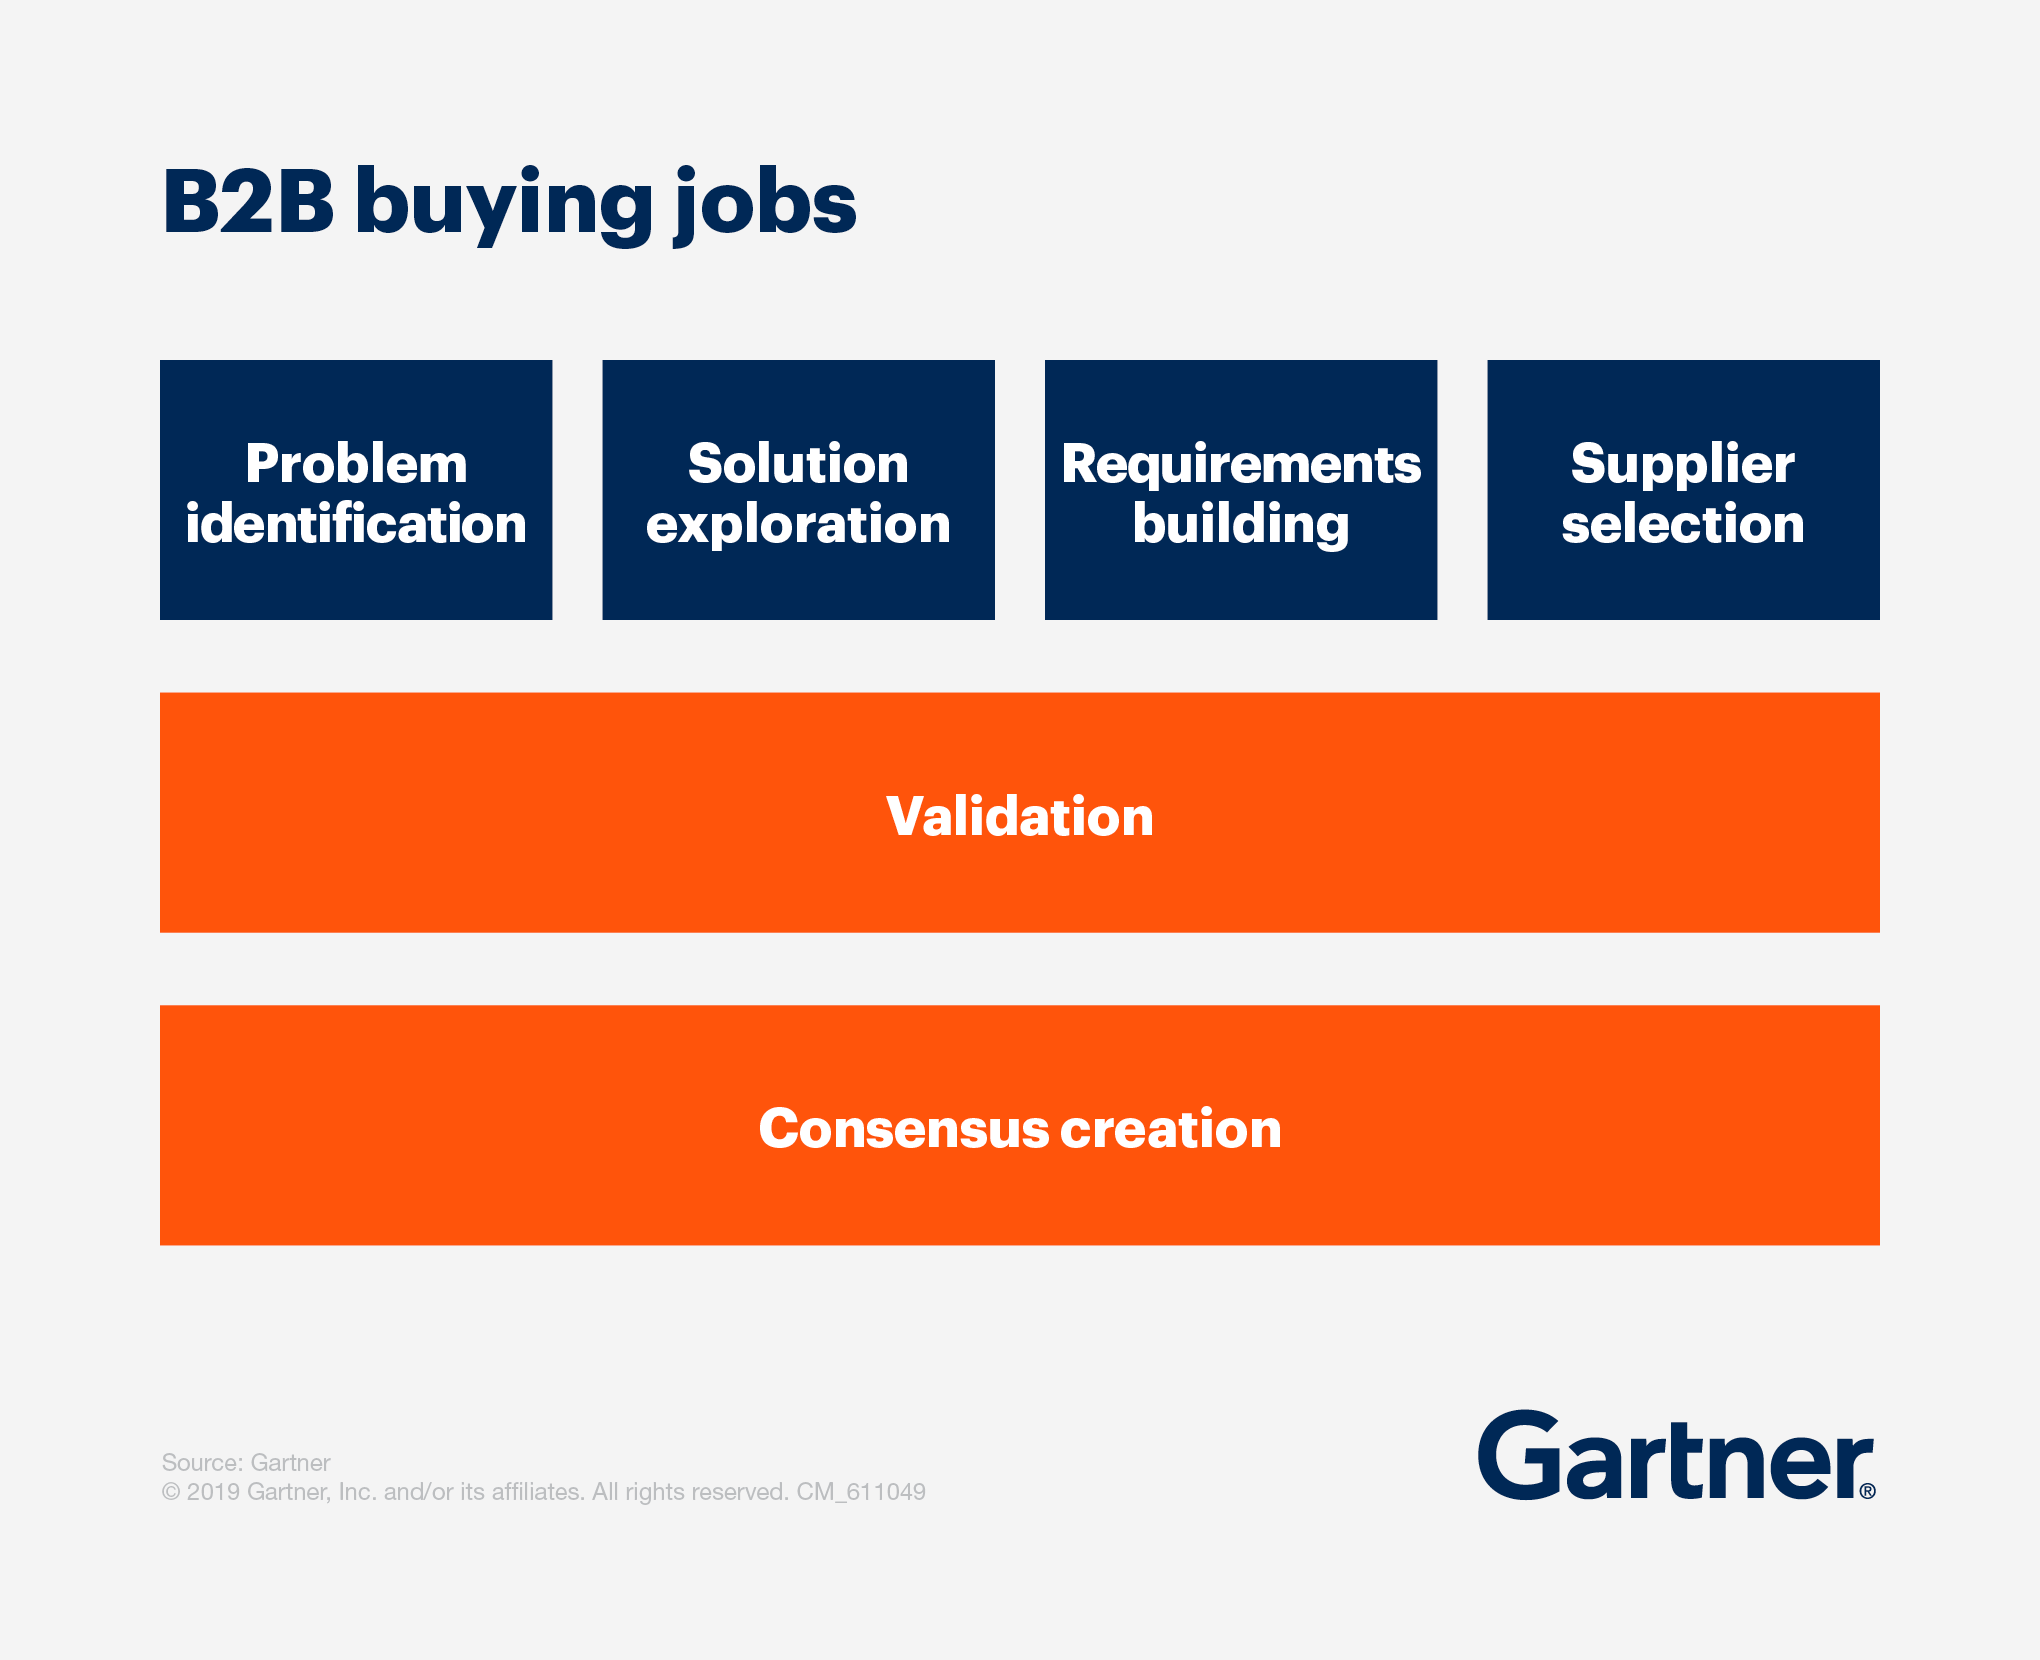 The six B2B buying jobs